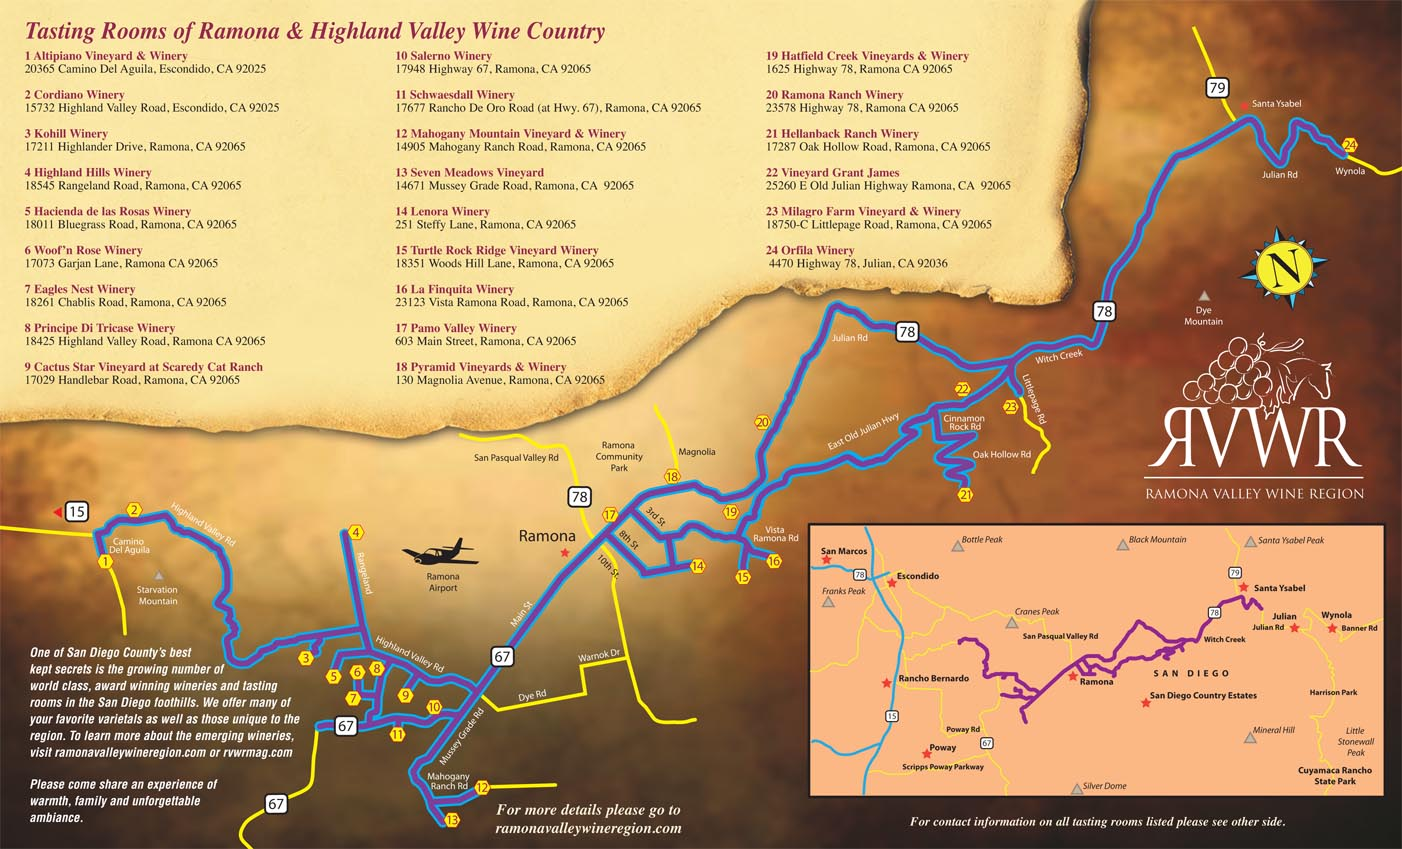 RVWR_map_11-25-2013_Layout 1